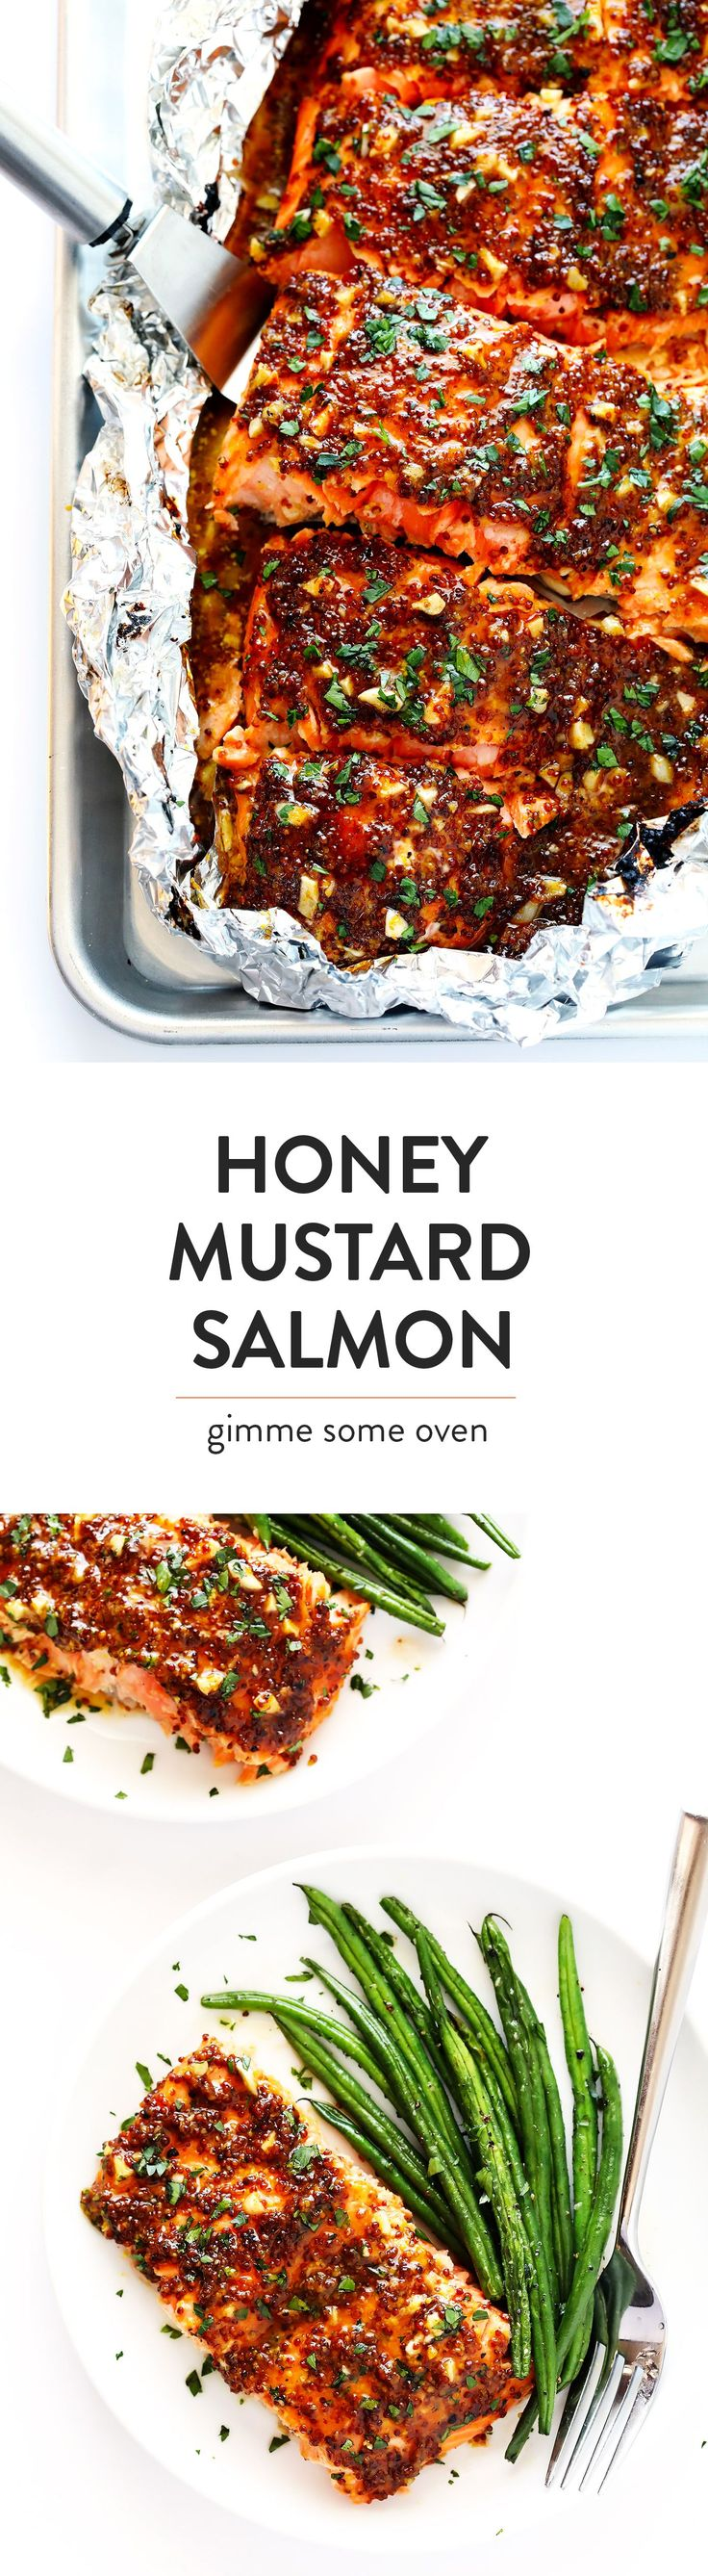 This 25-Minute Honey Mustard Salmon recipe is easy to make in the oven or grilled, it's full of amazing garlic honey mustard and herb flavors, and it's absolutely DELICIOUS! | gimmesomeoven.com http://eatdojo.com/healthy-recipes-salads-haters/